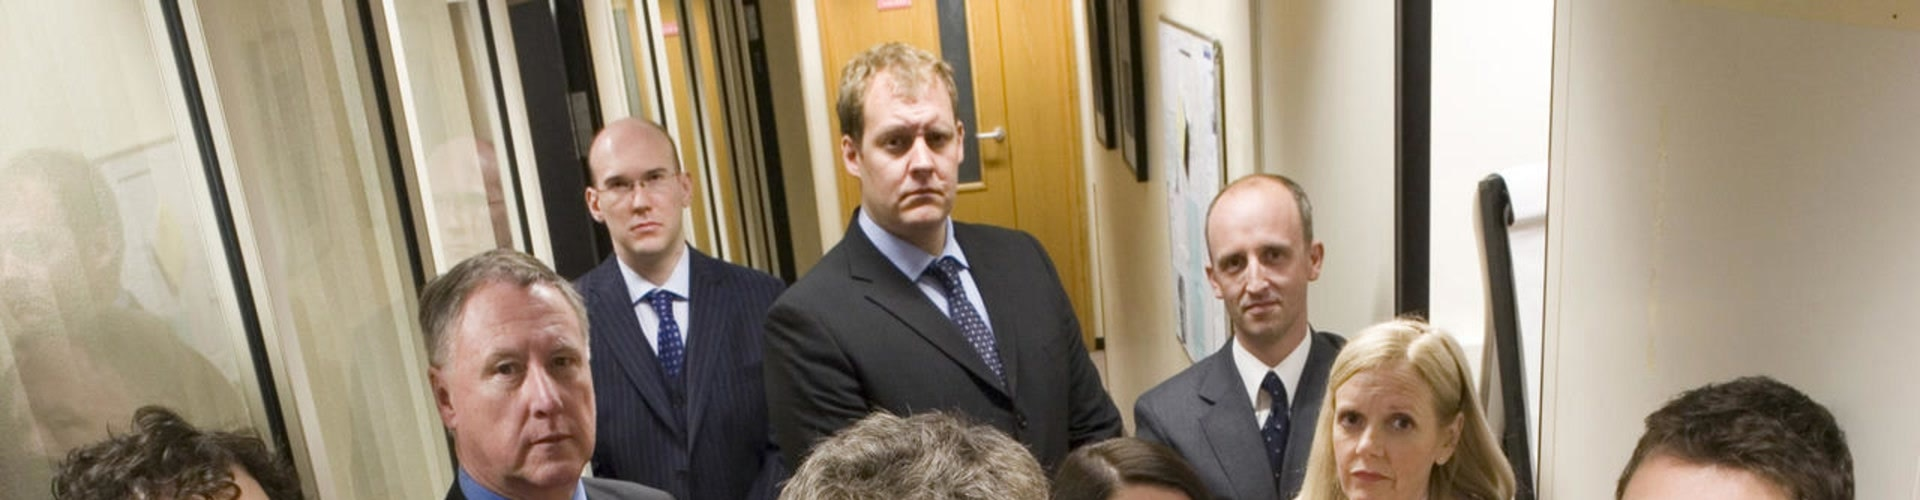 Watch The Thick of It Online